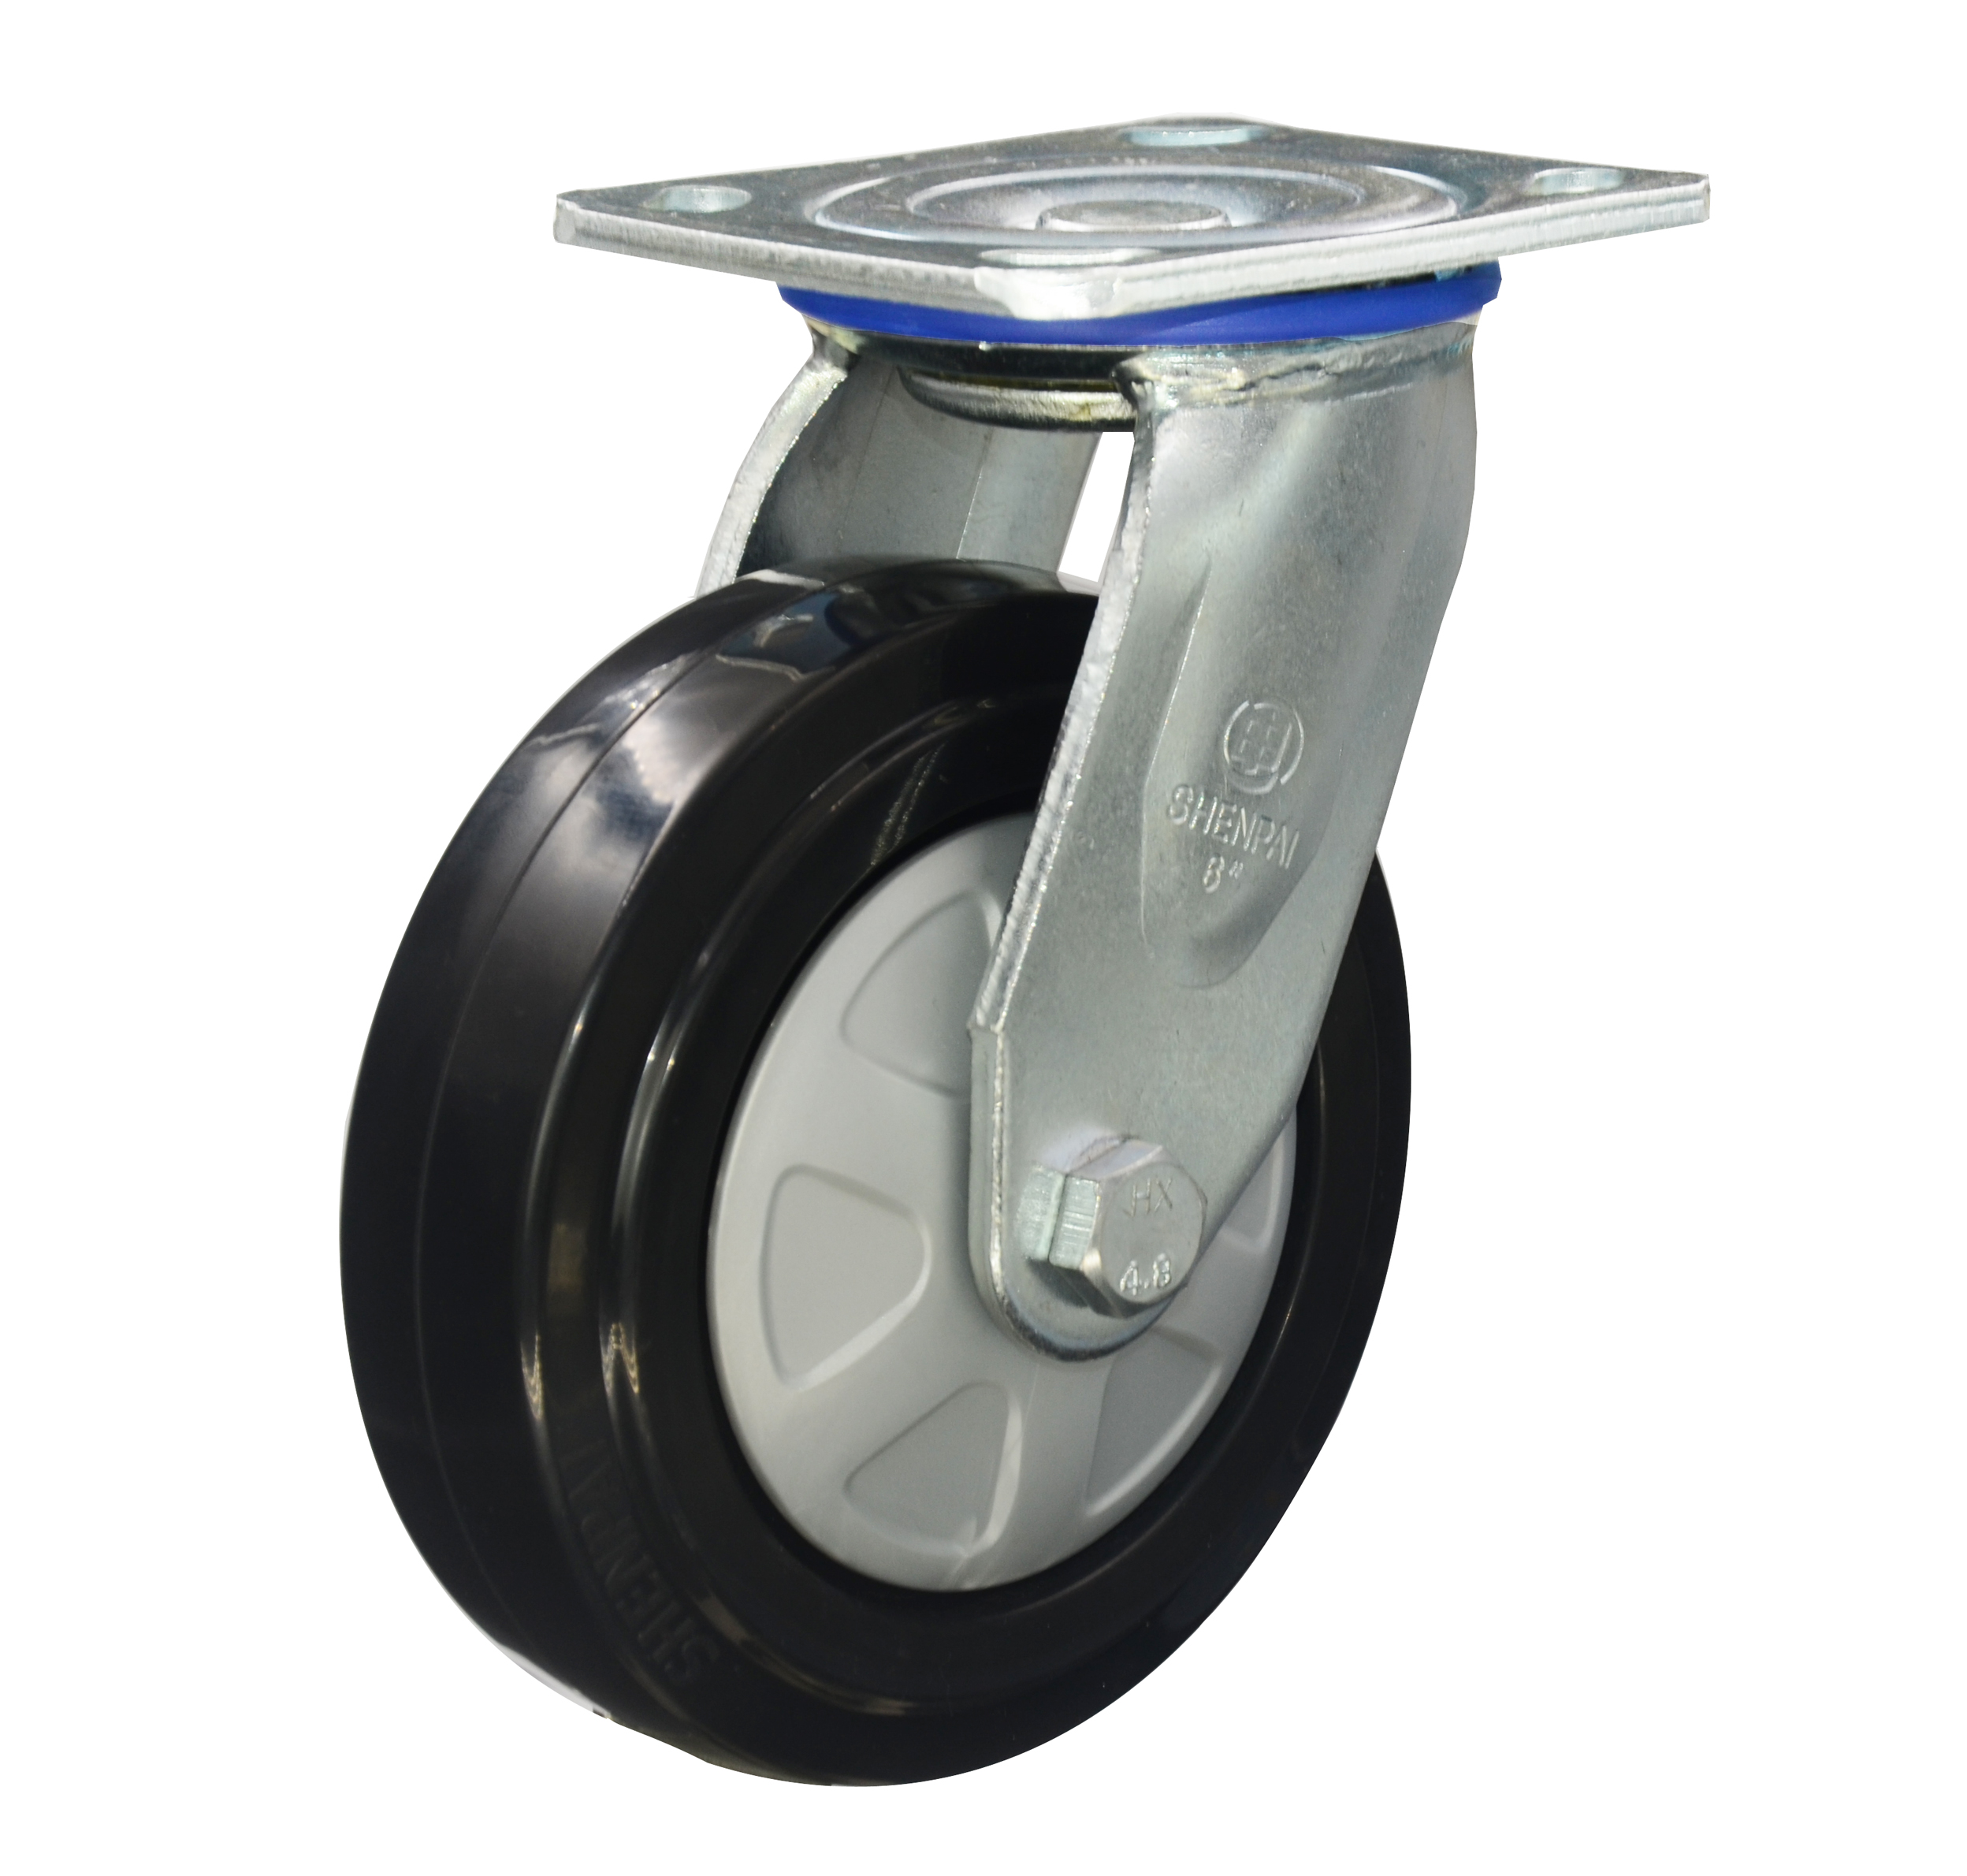 6 Inch Rubber Castor Wheel swivel